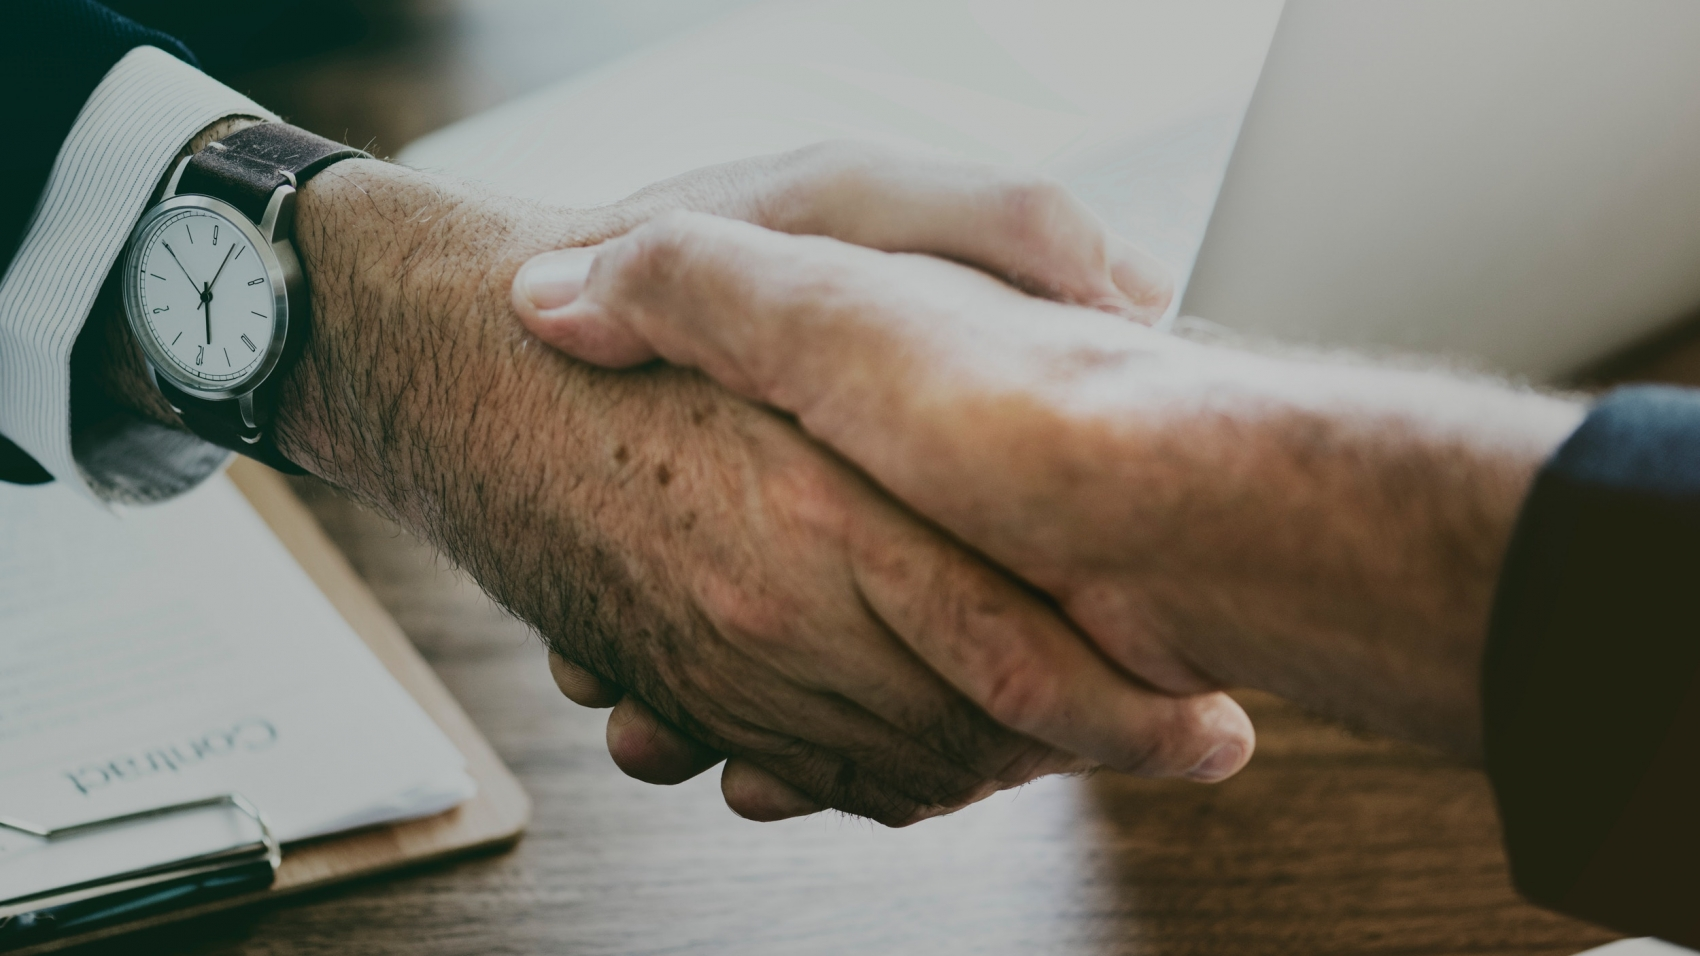 a meeting closed with a hand shake